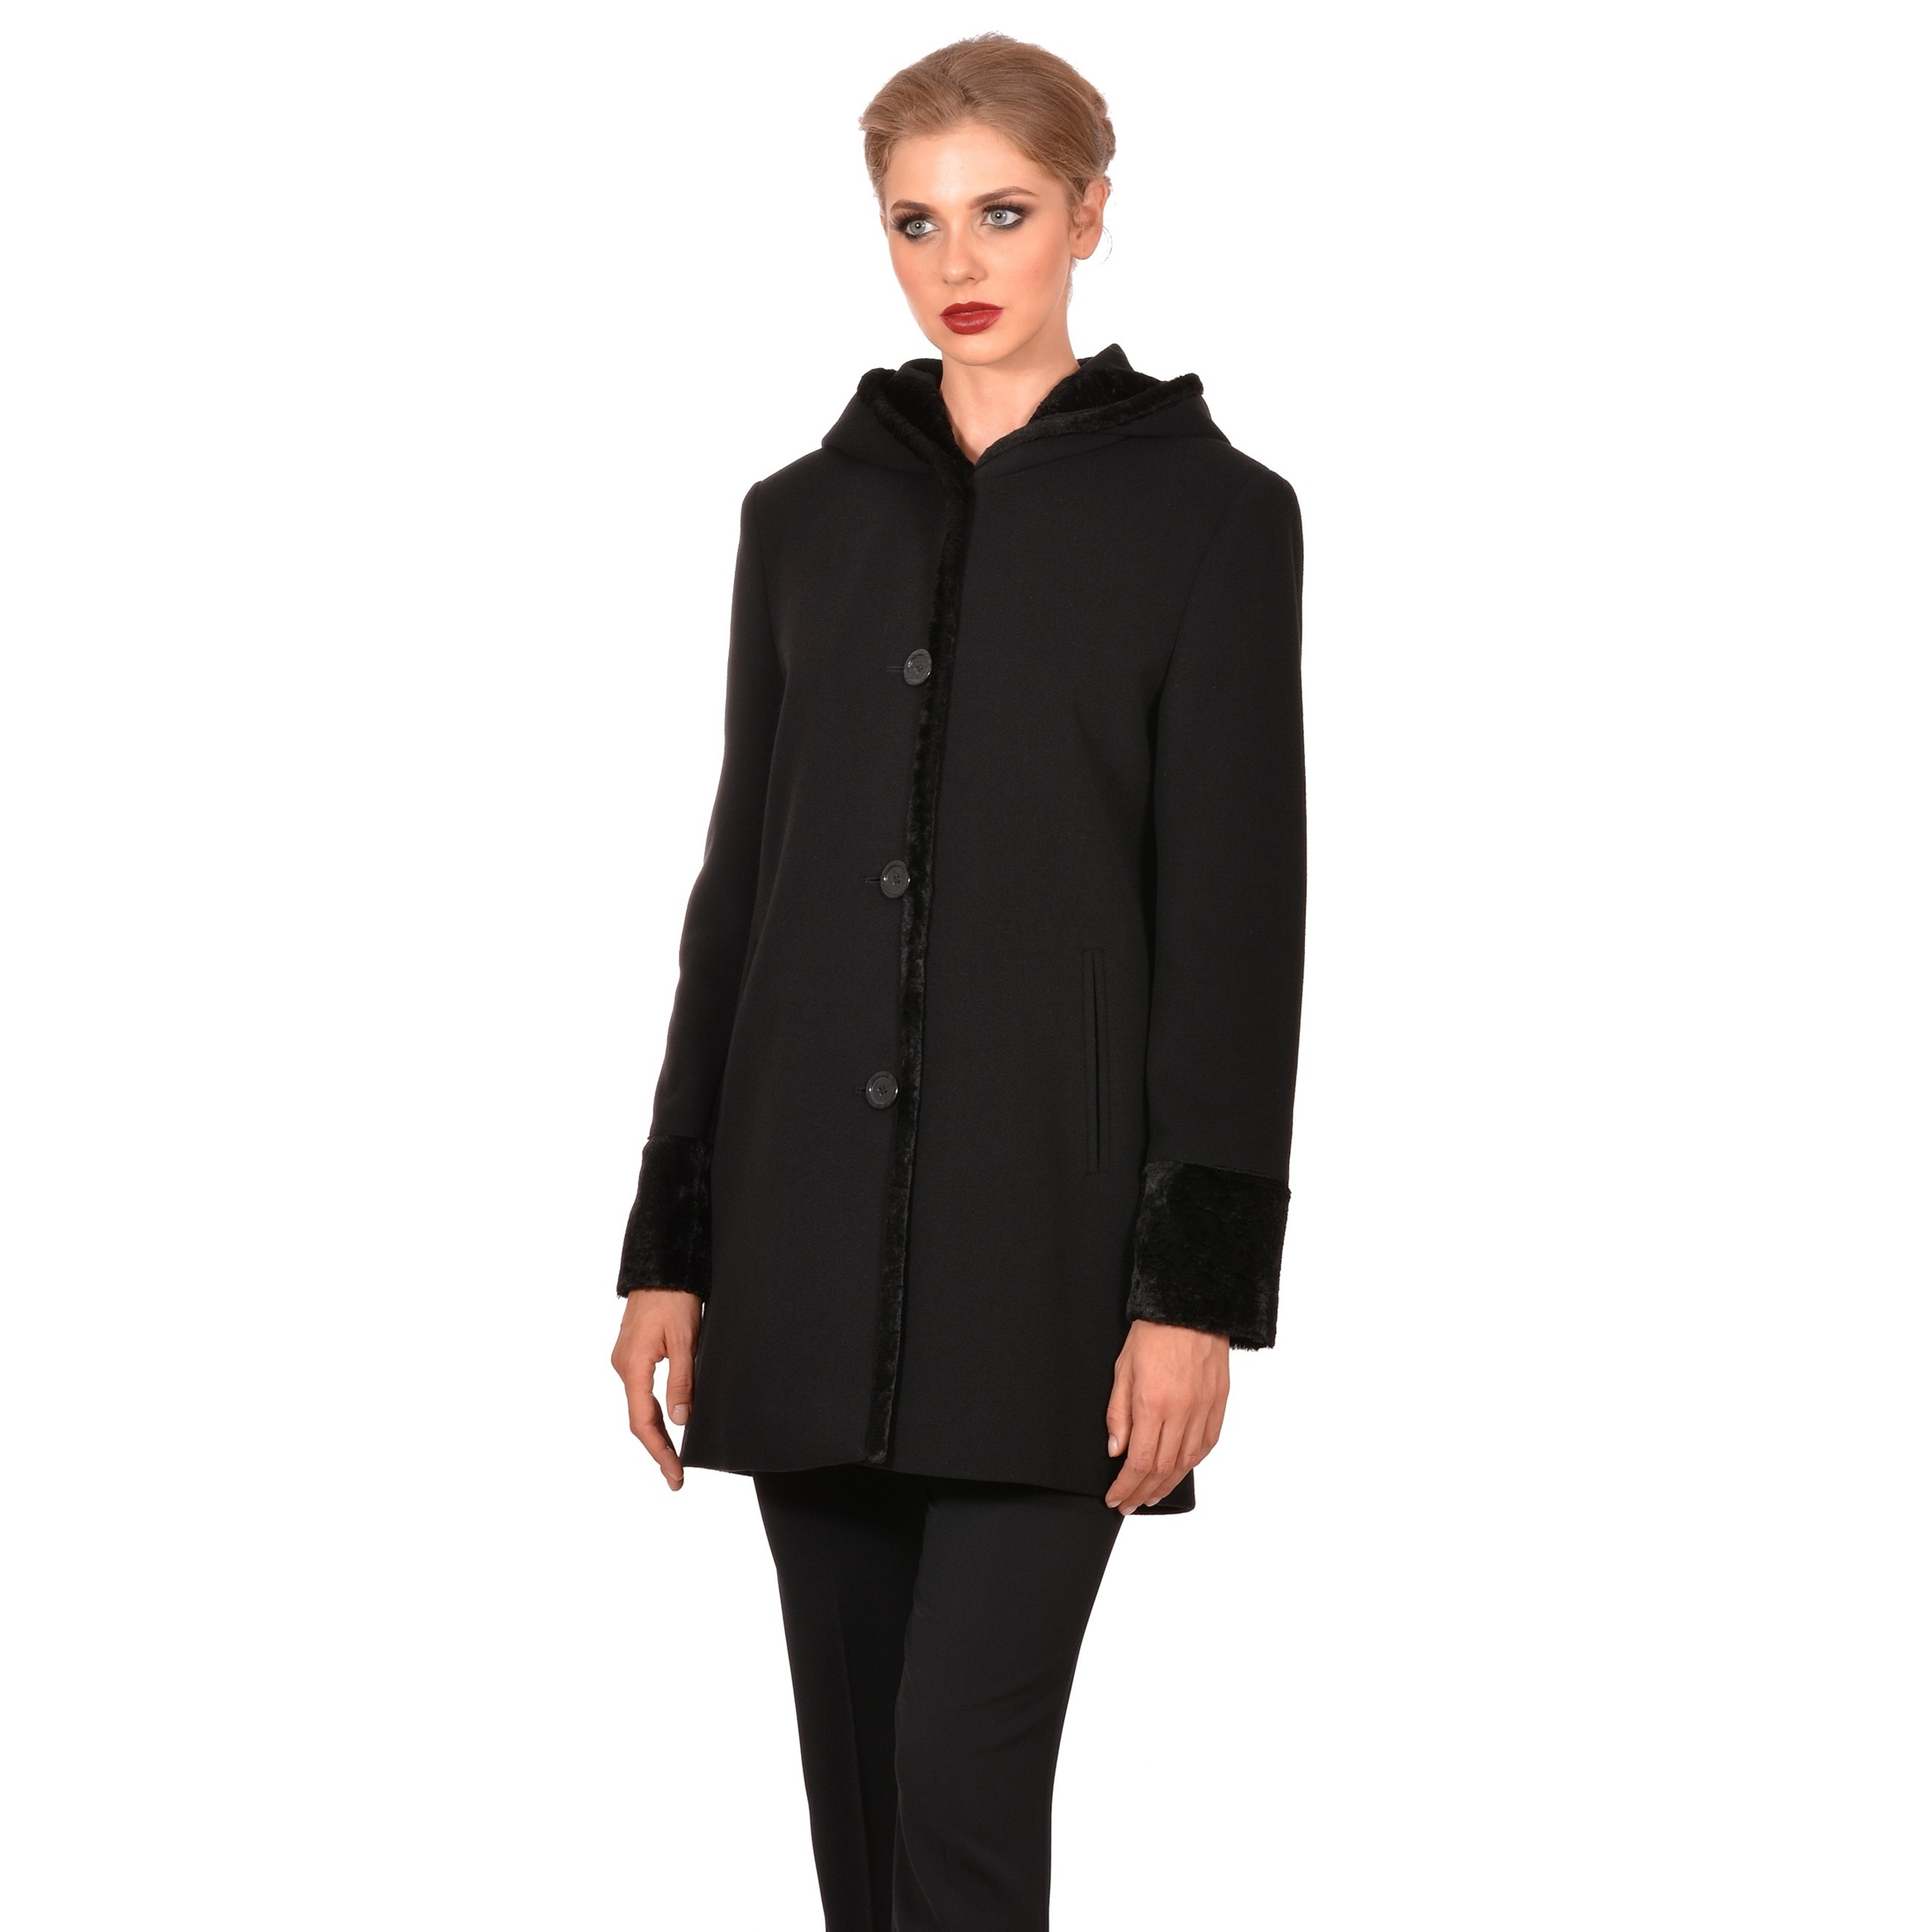 Image de Women's Coat LADY M - LM40876